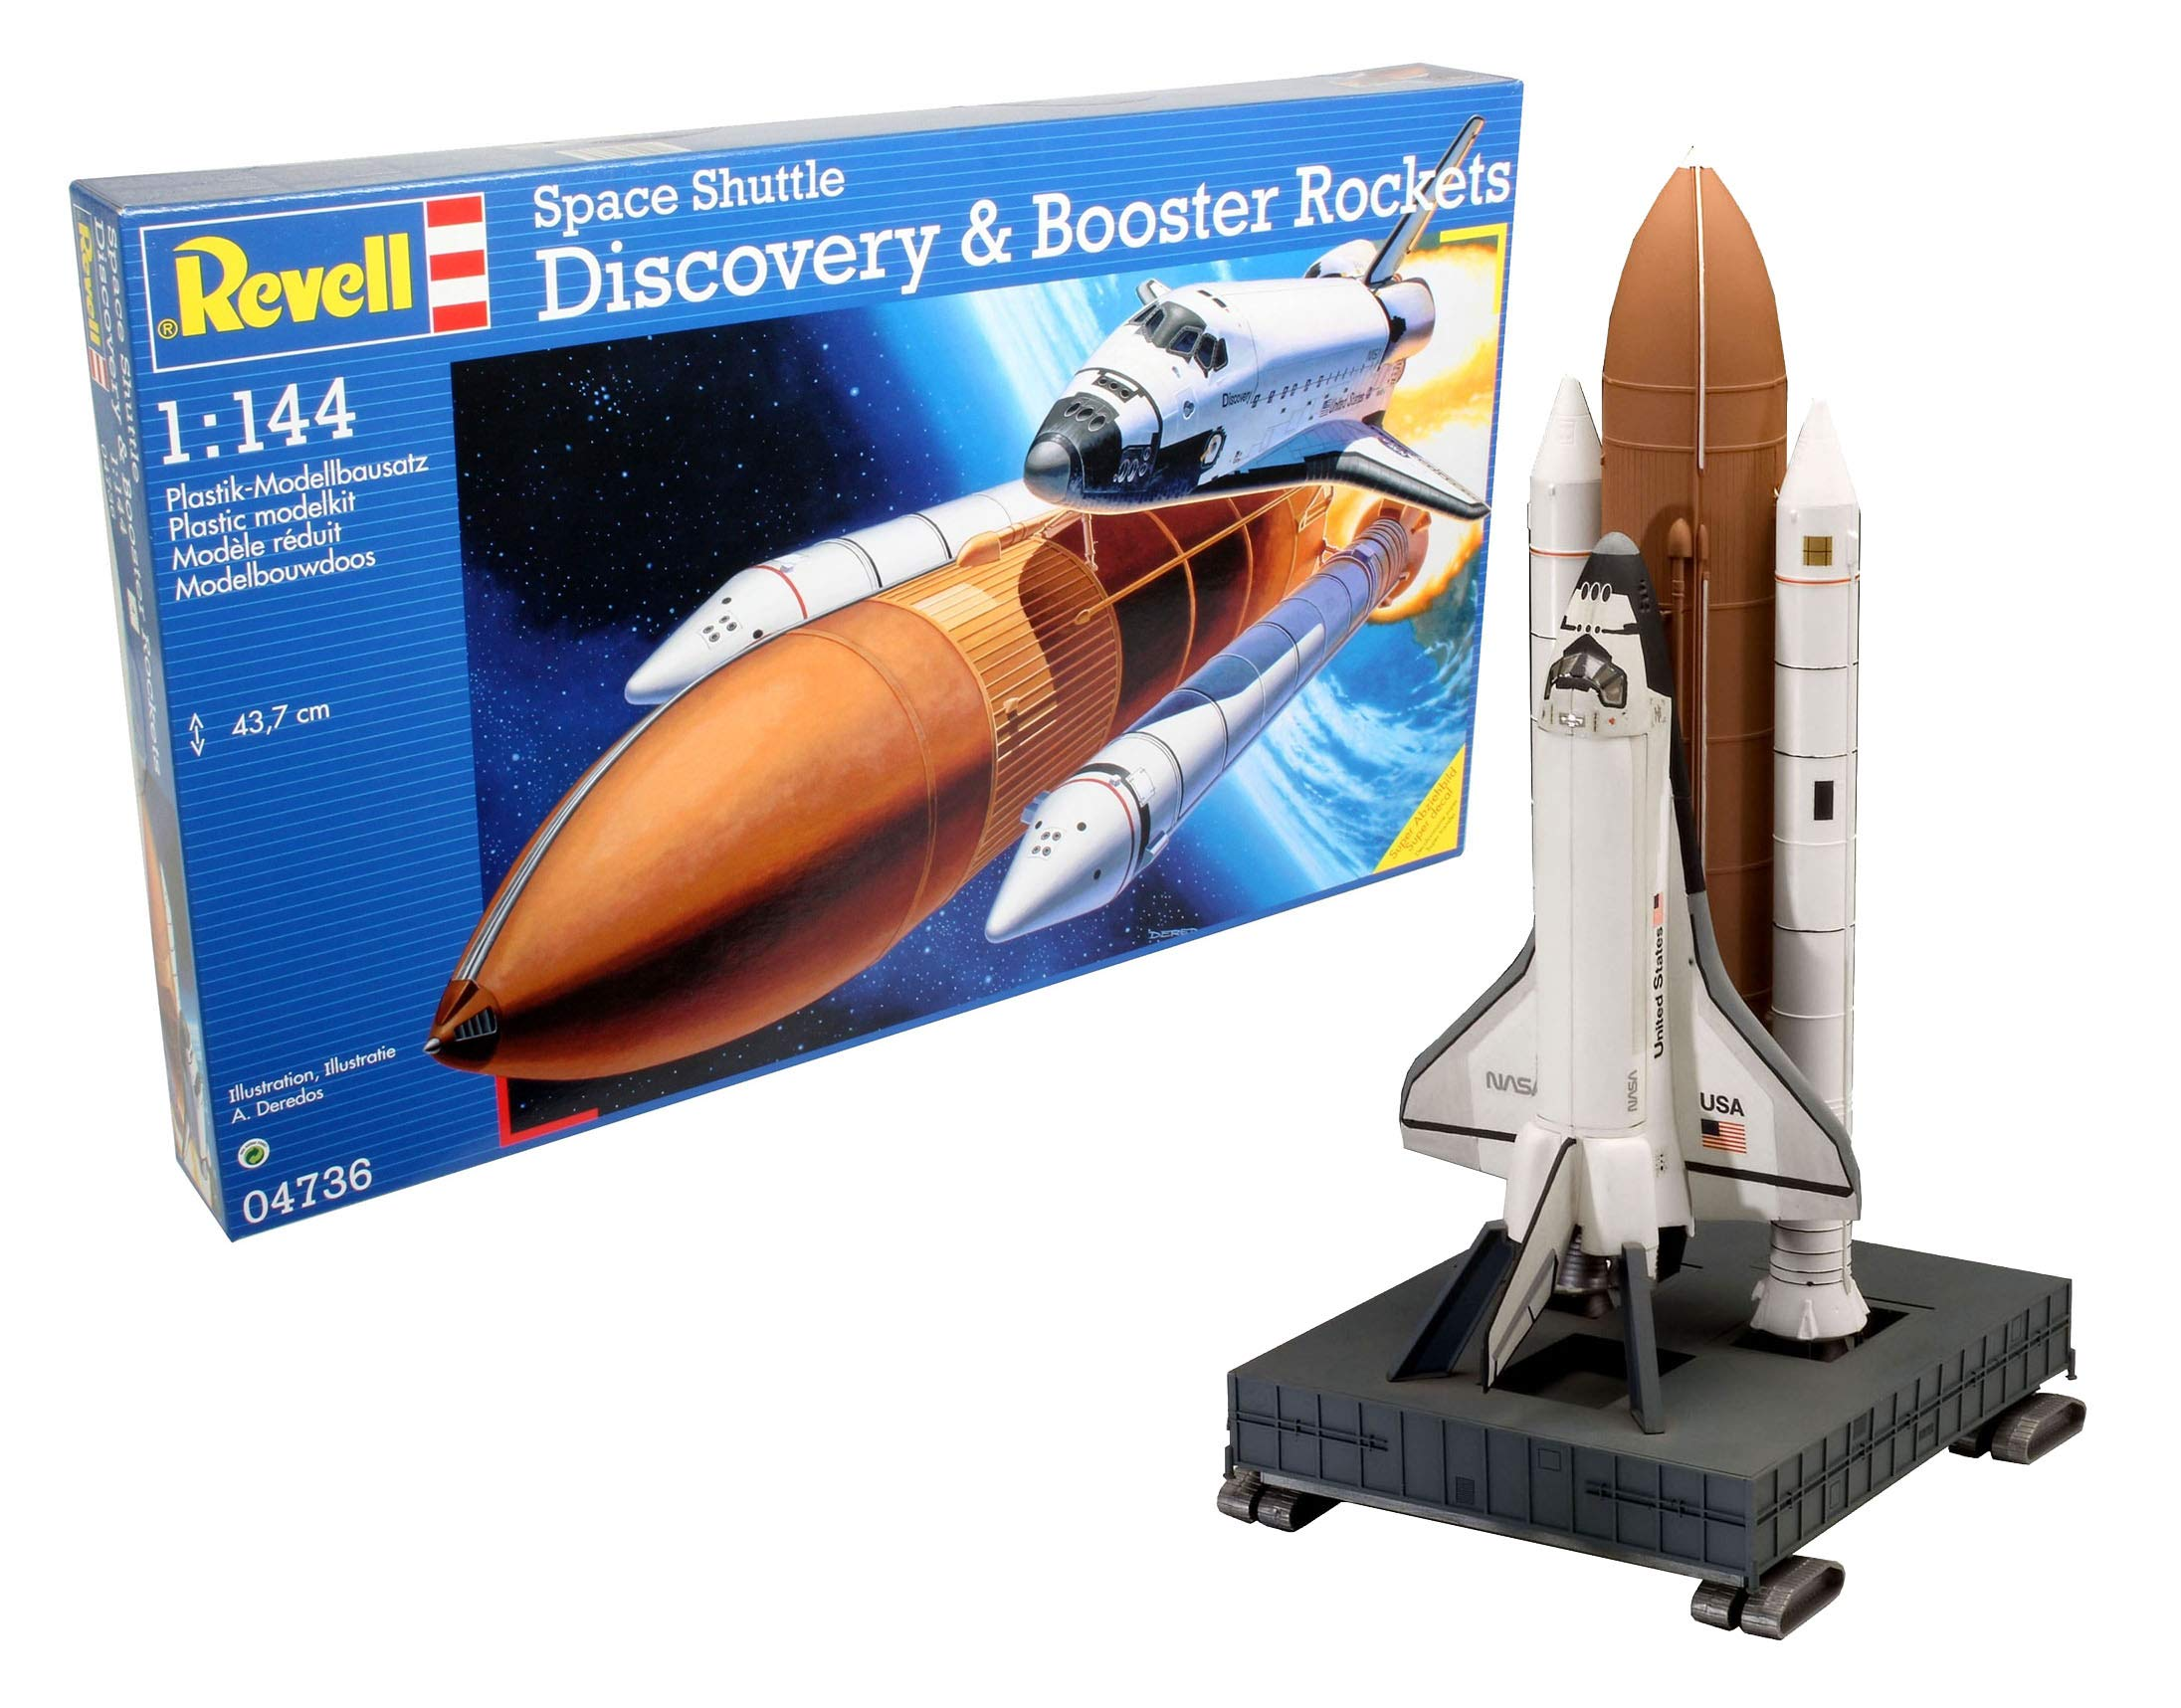 Space Shuttle Discovery & Booster Rocket 1:144 scale model